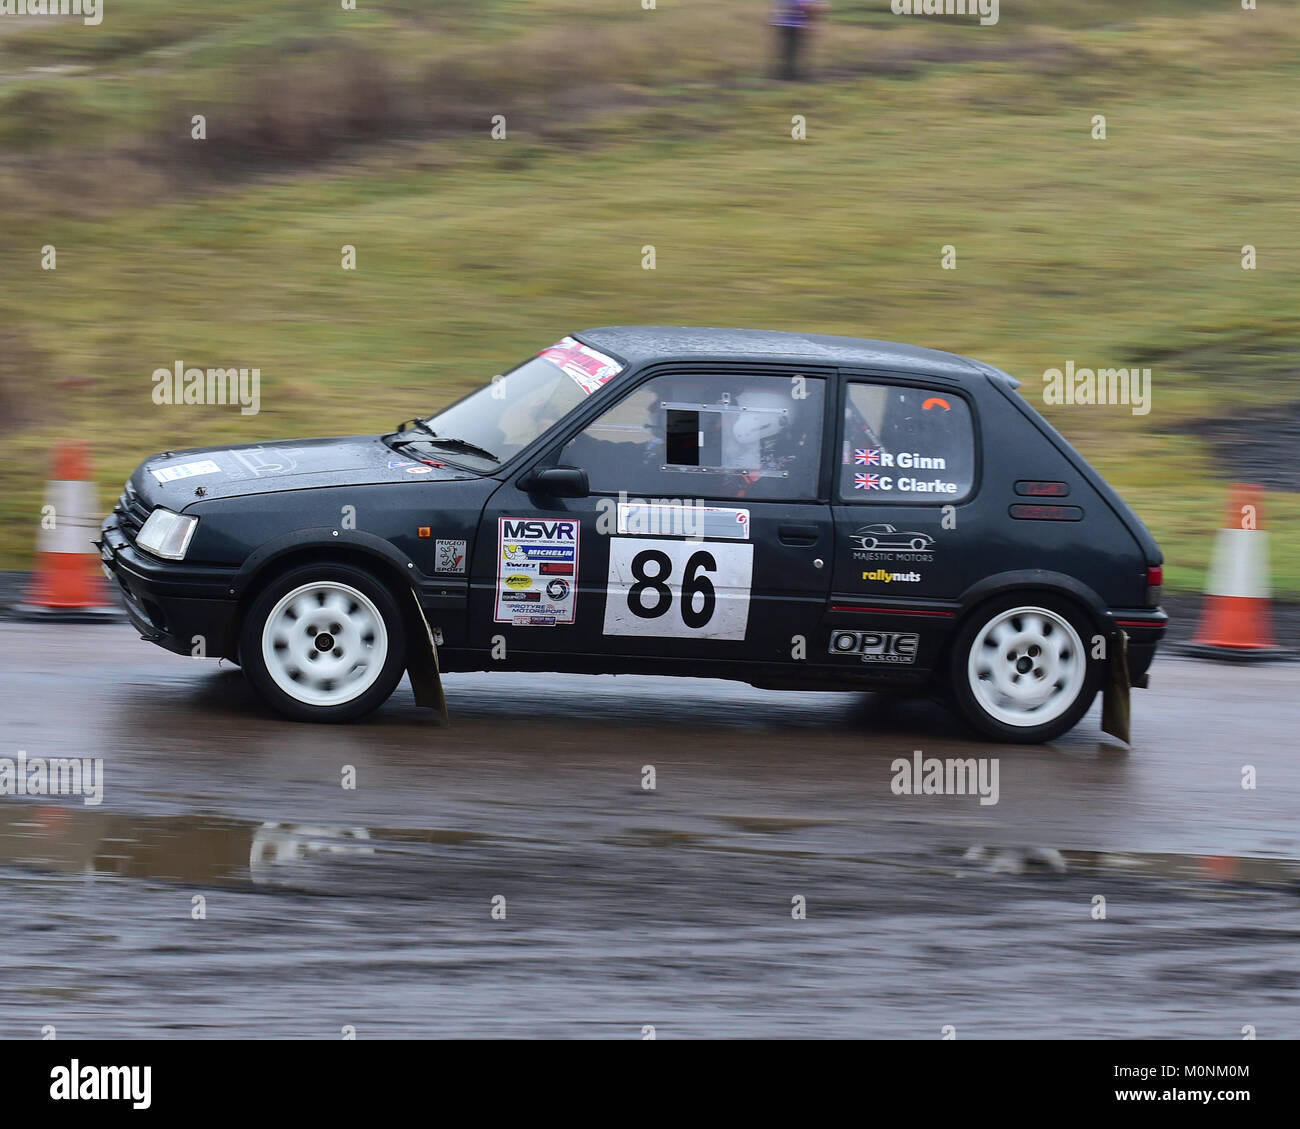 chris clarke robert ginn peugeot 205 mgj rally stages chelmsford motor club